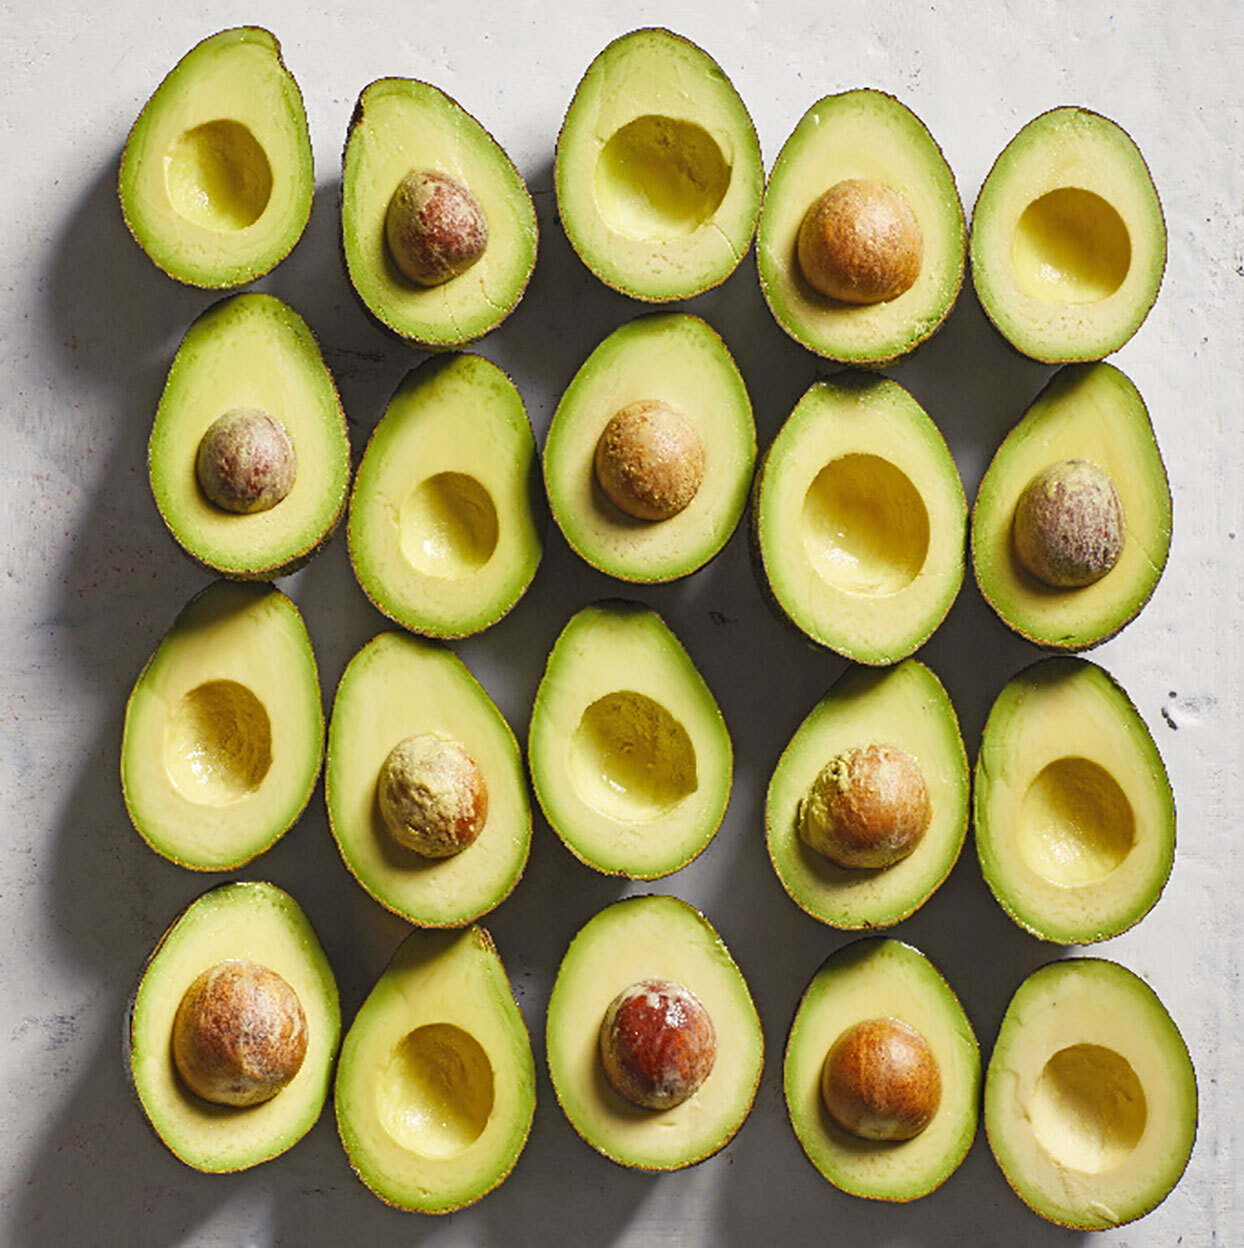 Avocado halves with and without pits